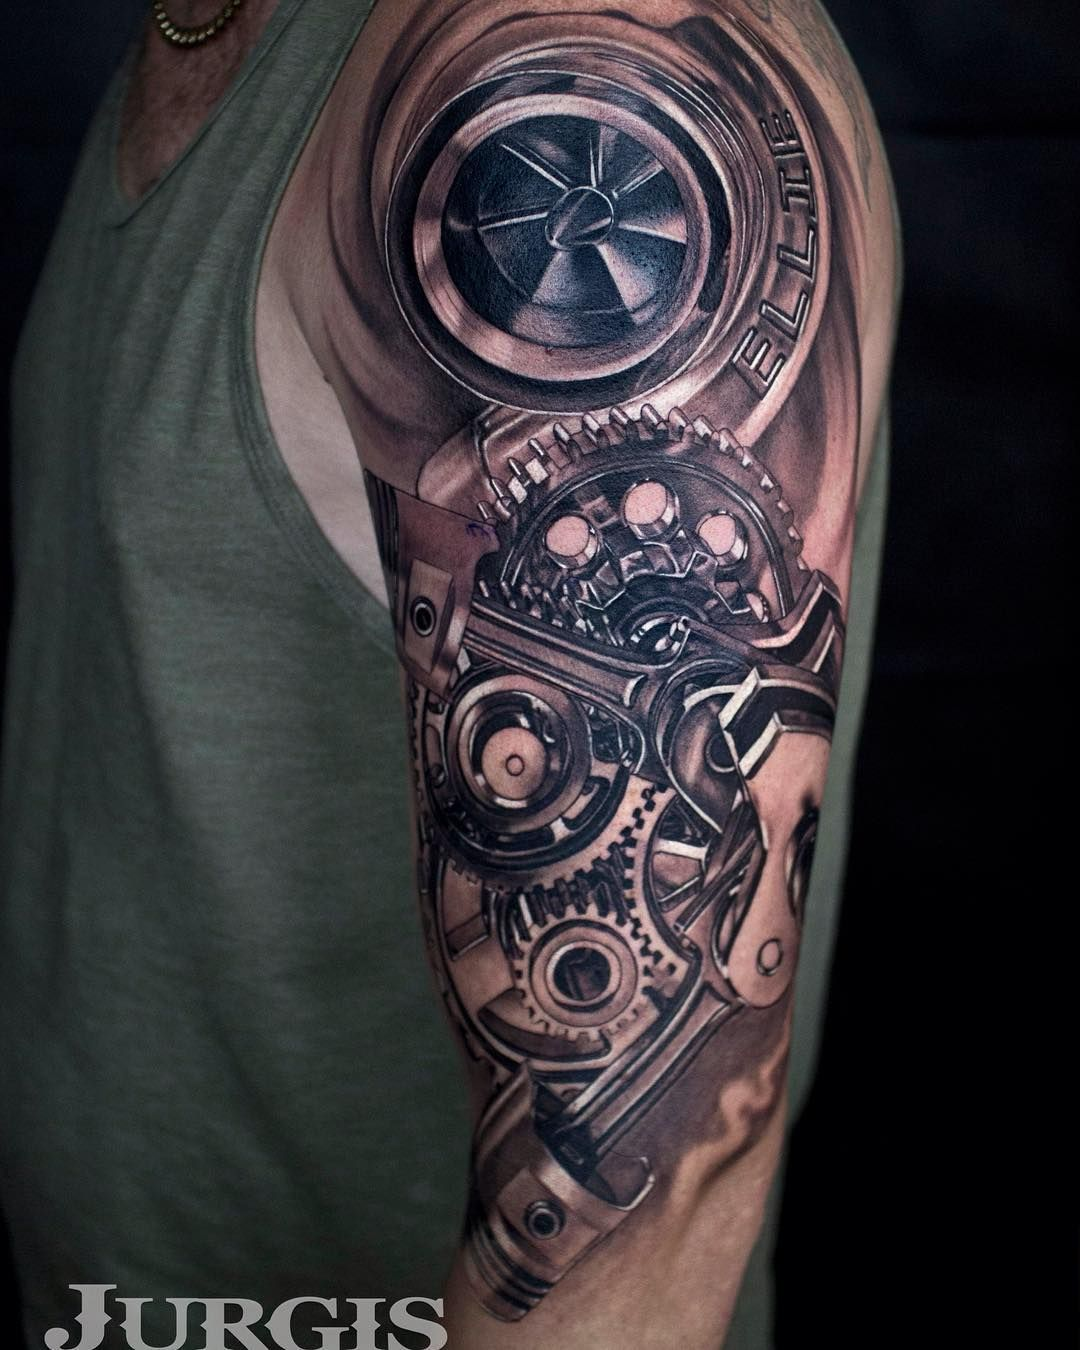 Tattoo Designs Engine: Did Some Cool Turbo Stuff, Two Days In A Row :) Thanks For